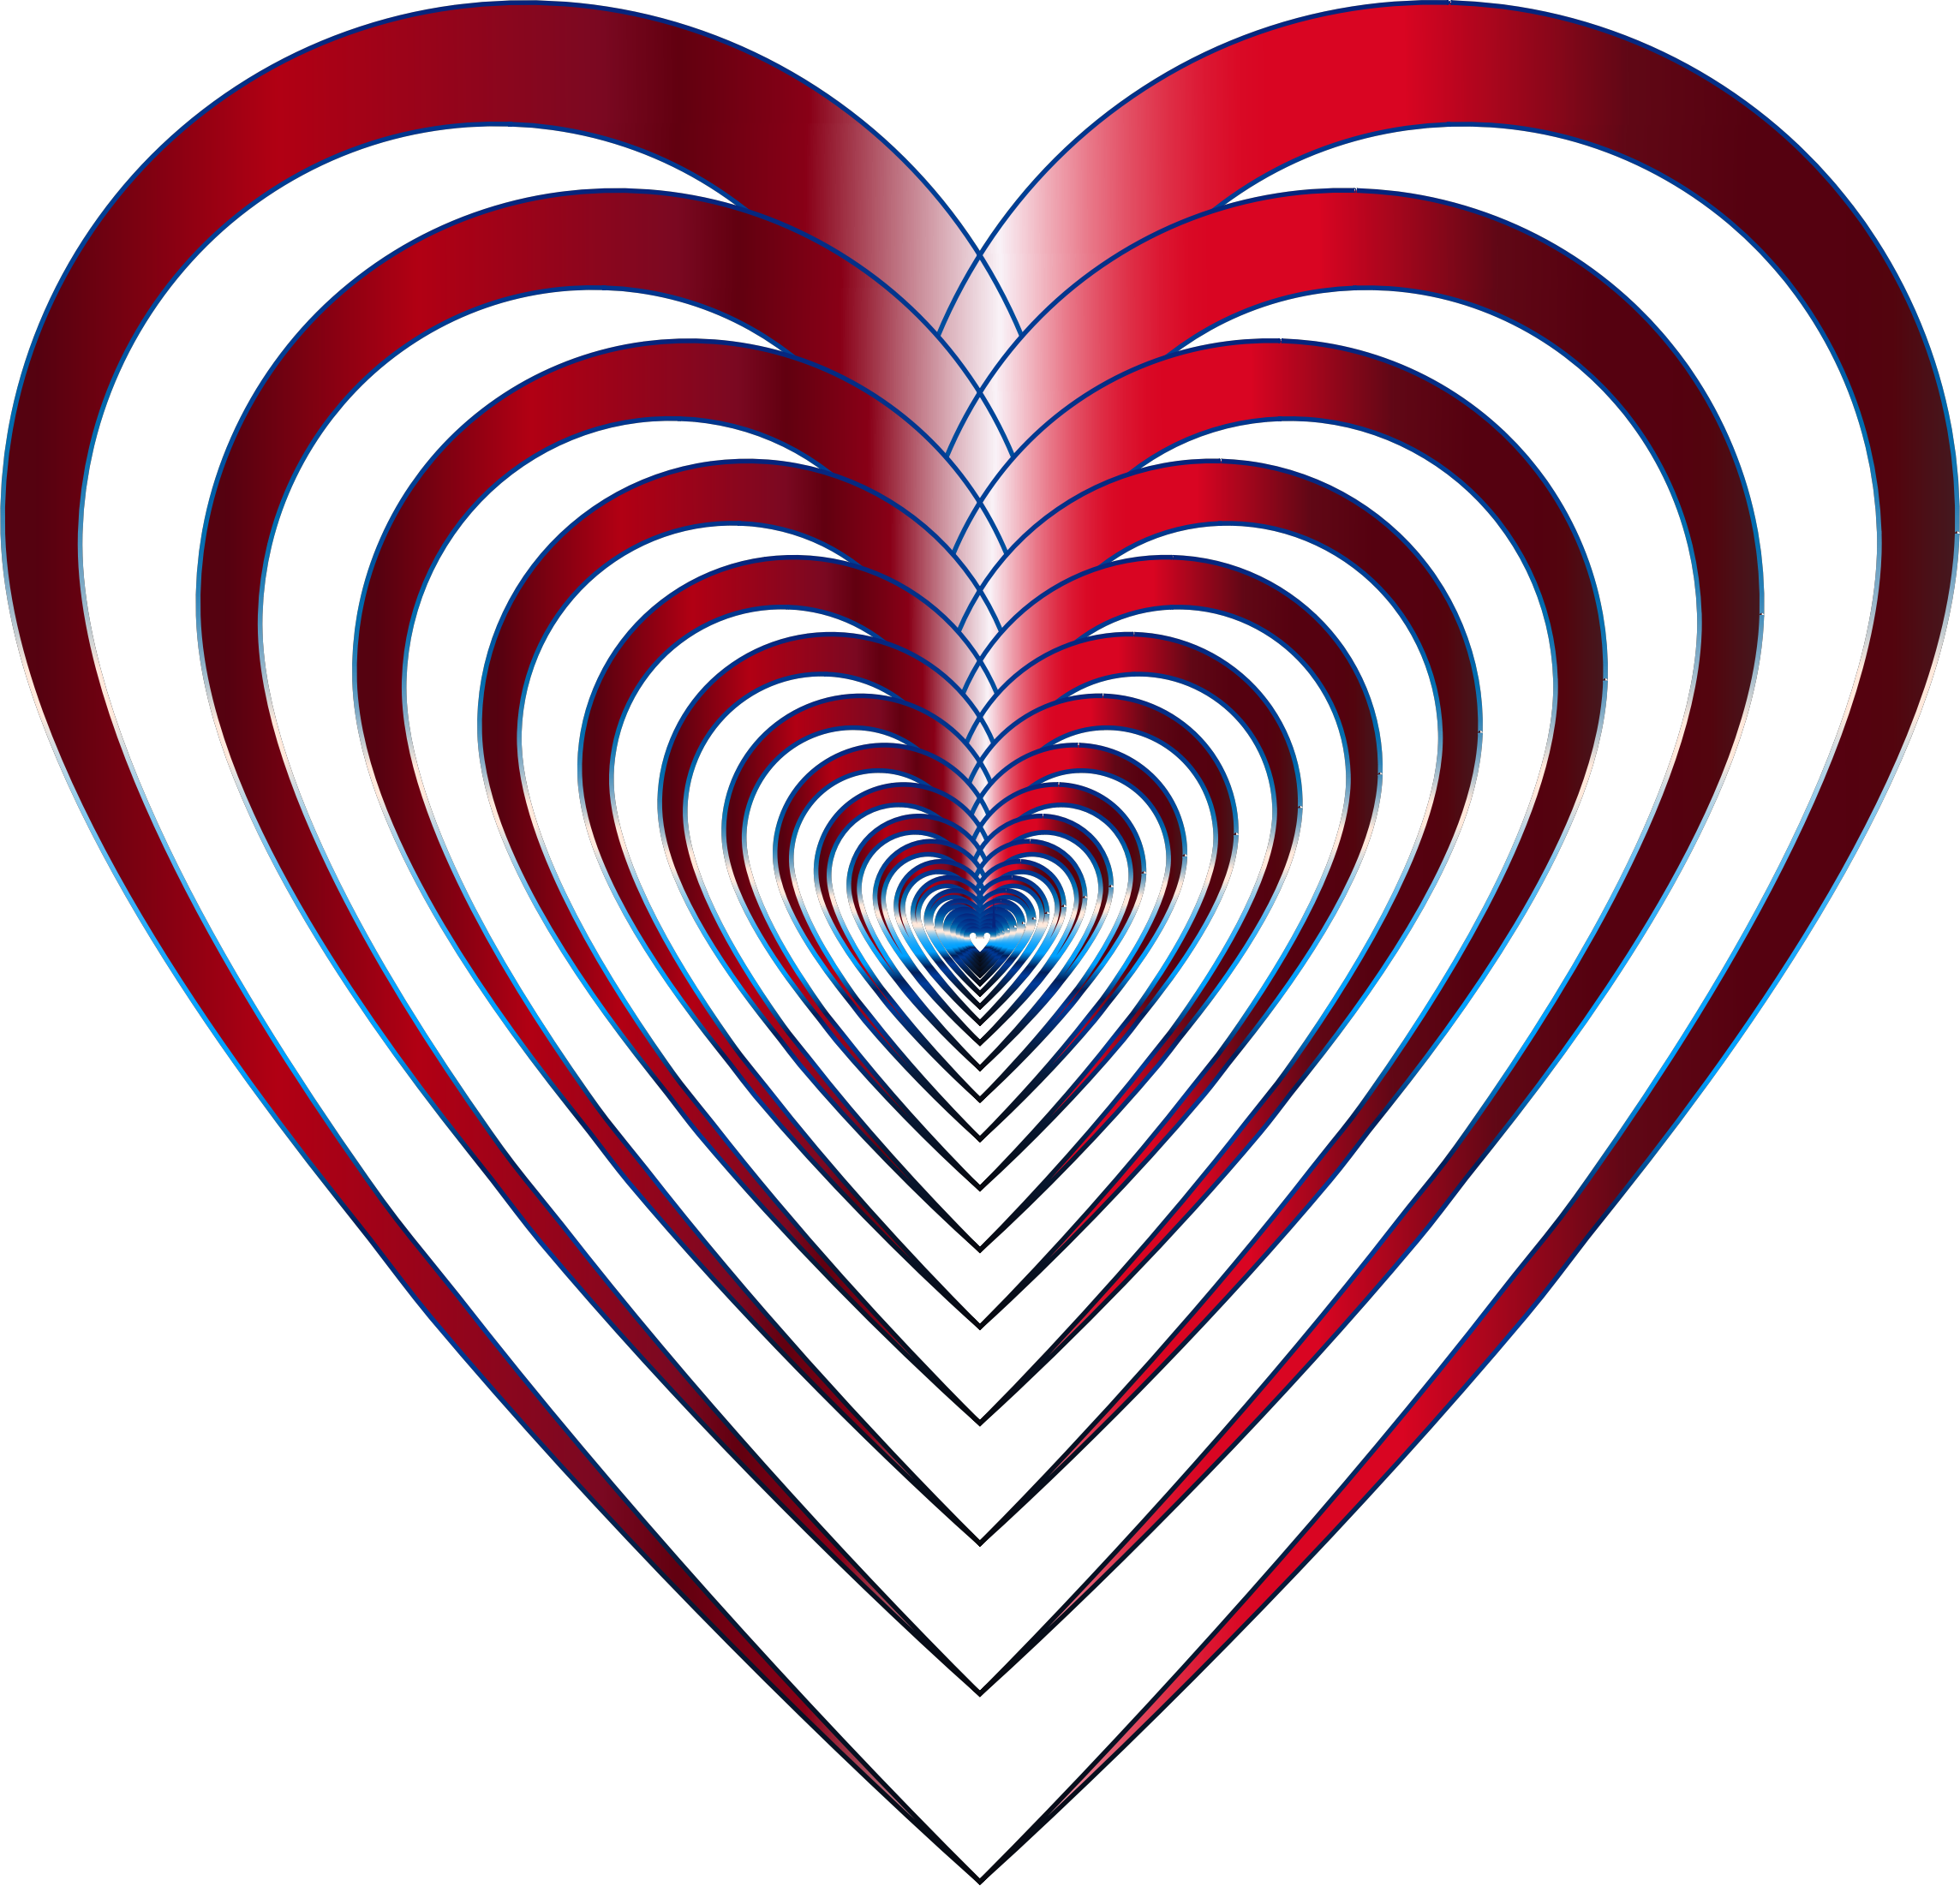 Love Wallpaper Png : clipart - chromatic Love 6 No Background